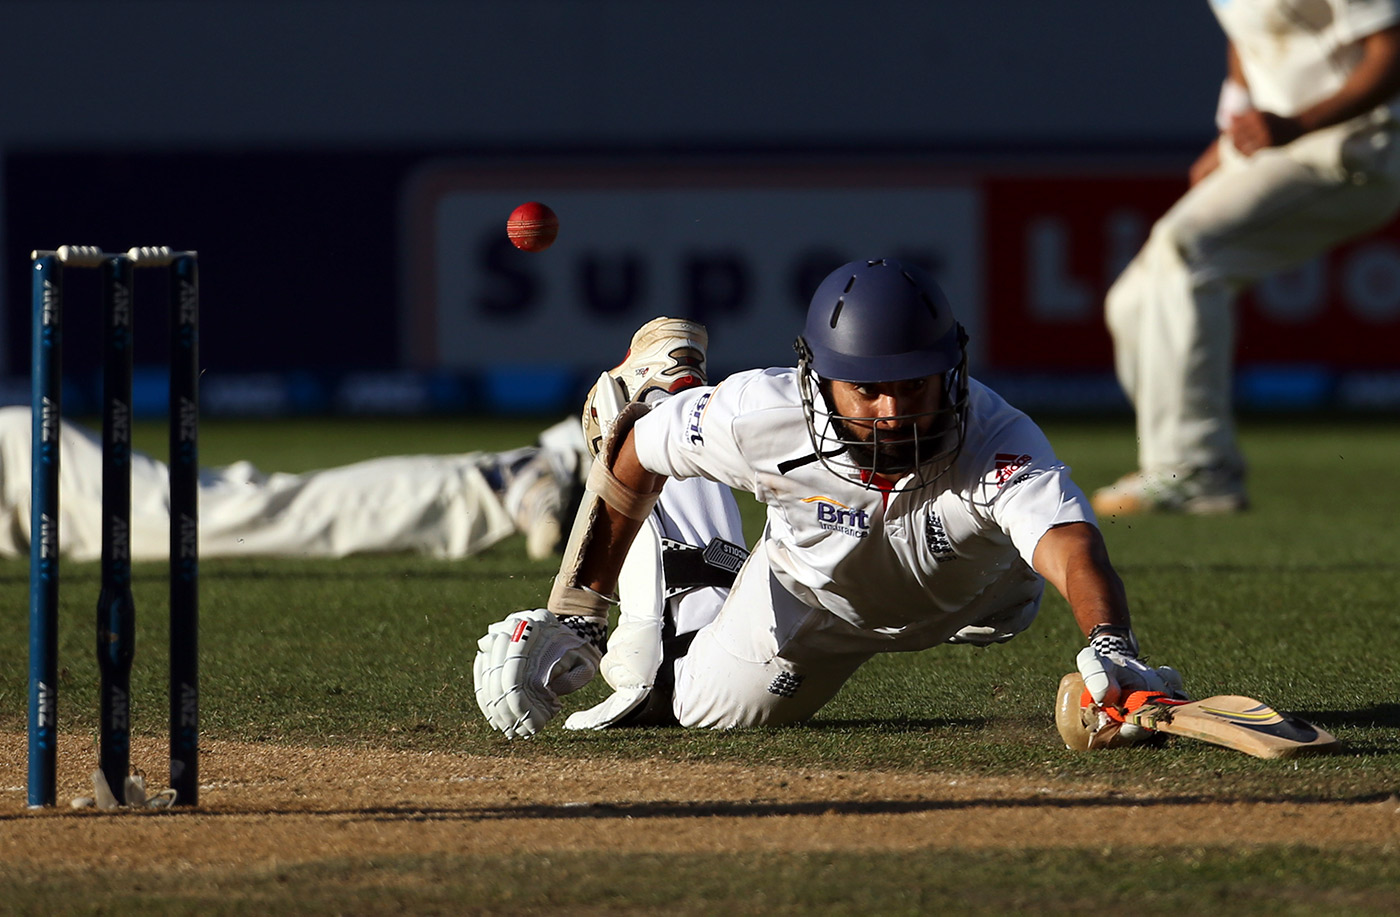 Monty Panesar dives into the crease